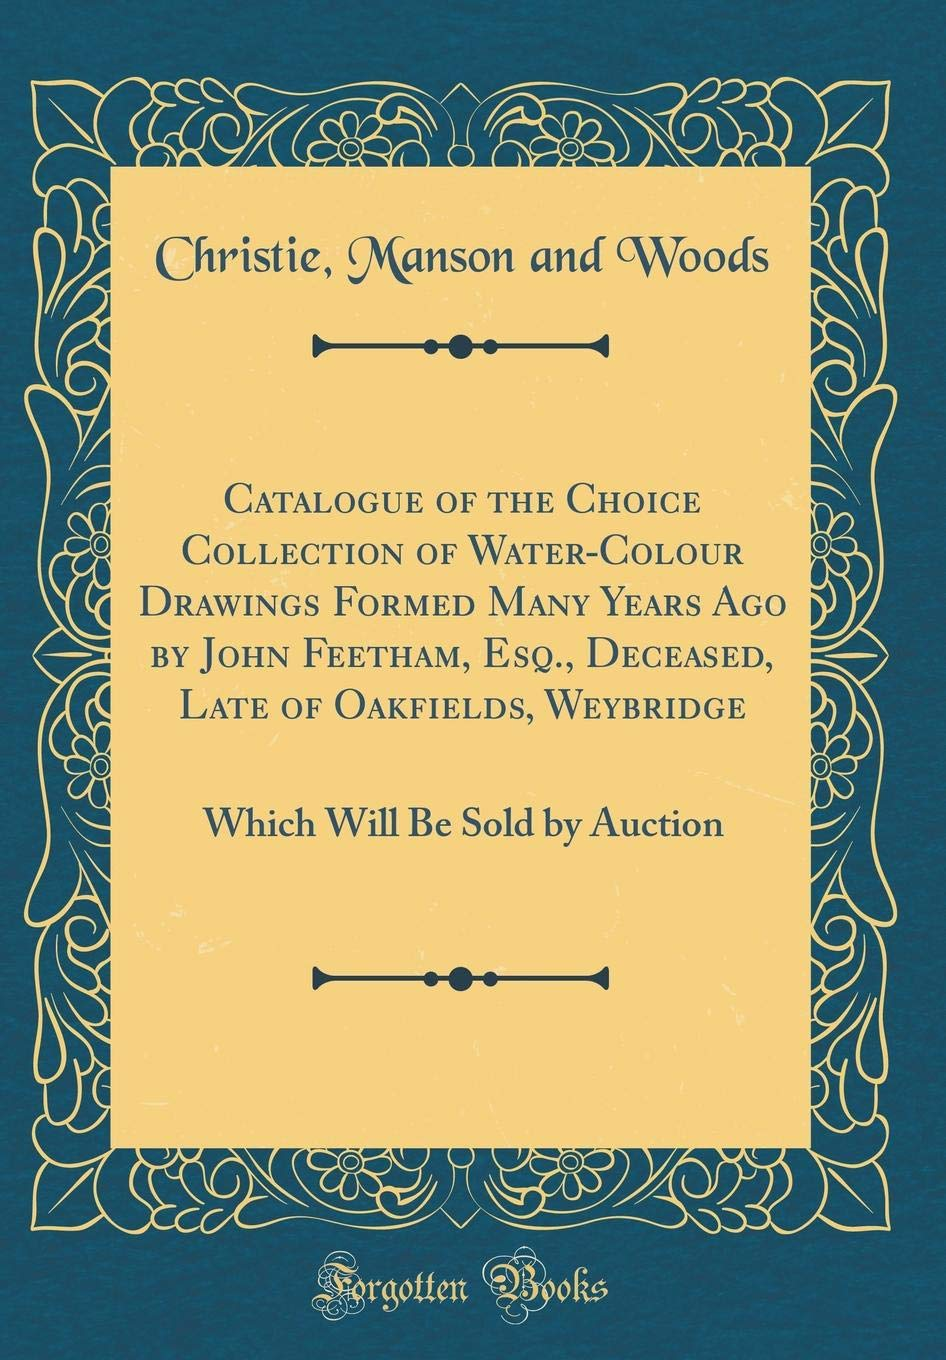 Catalogue of the Choice Collection of Water-Colour Drawings Formed Many Years Ago by John Feetham, Esq., Deceased, Late of Oakfields, Weybridge: Which Will Be Sold by Auction (Classic Reprint) ebook